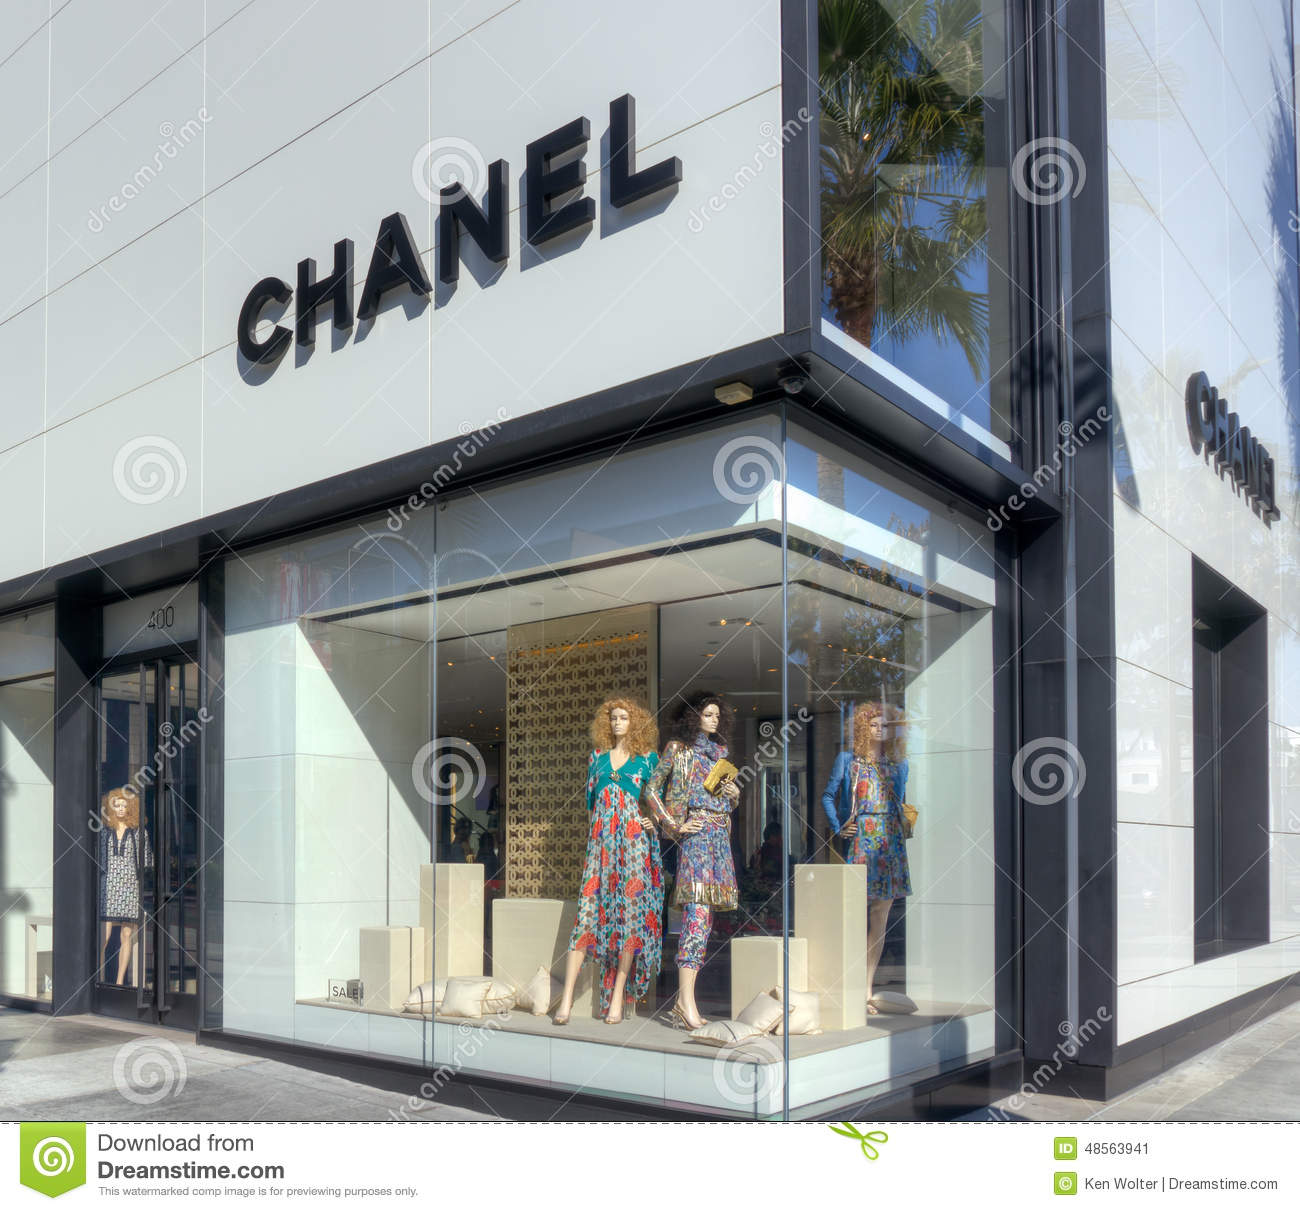 Women clothing stores. Beverly hills clothing stores